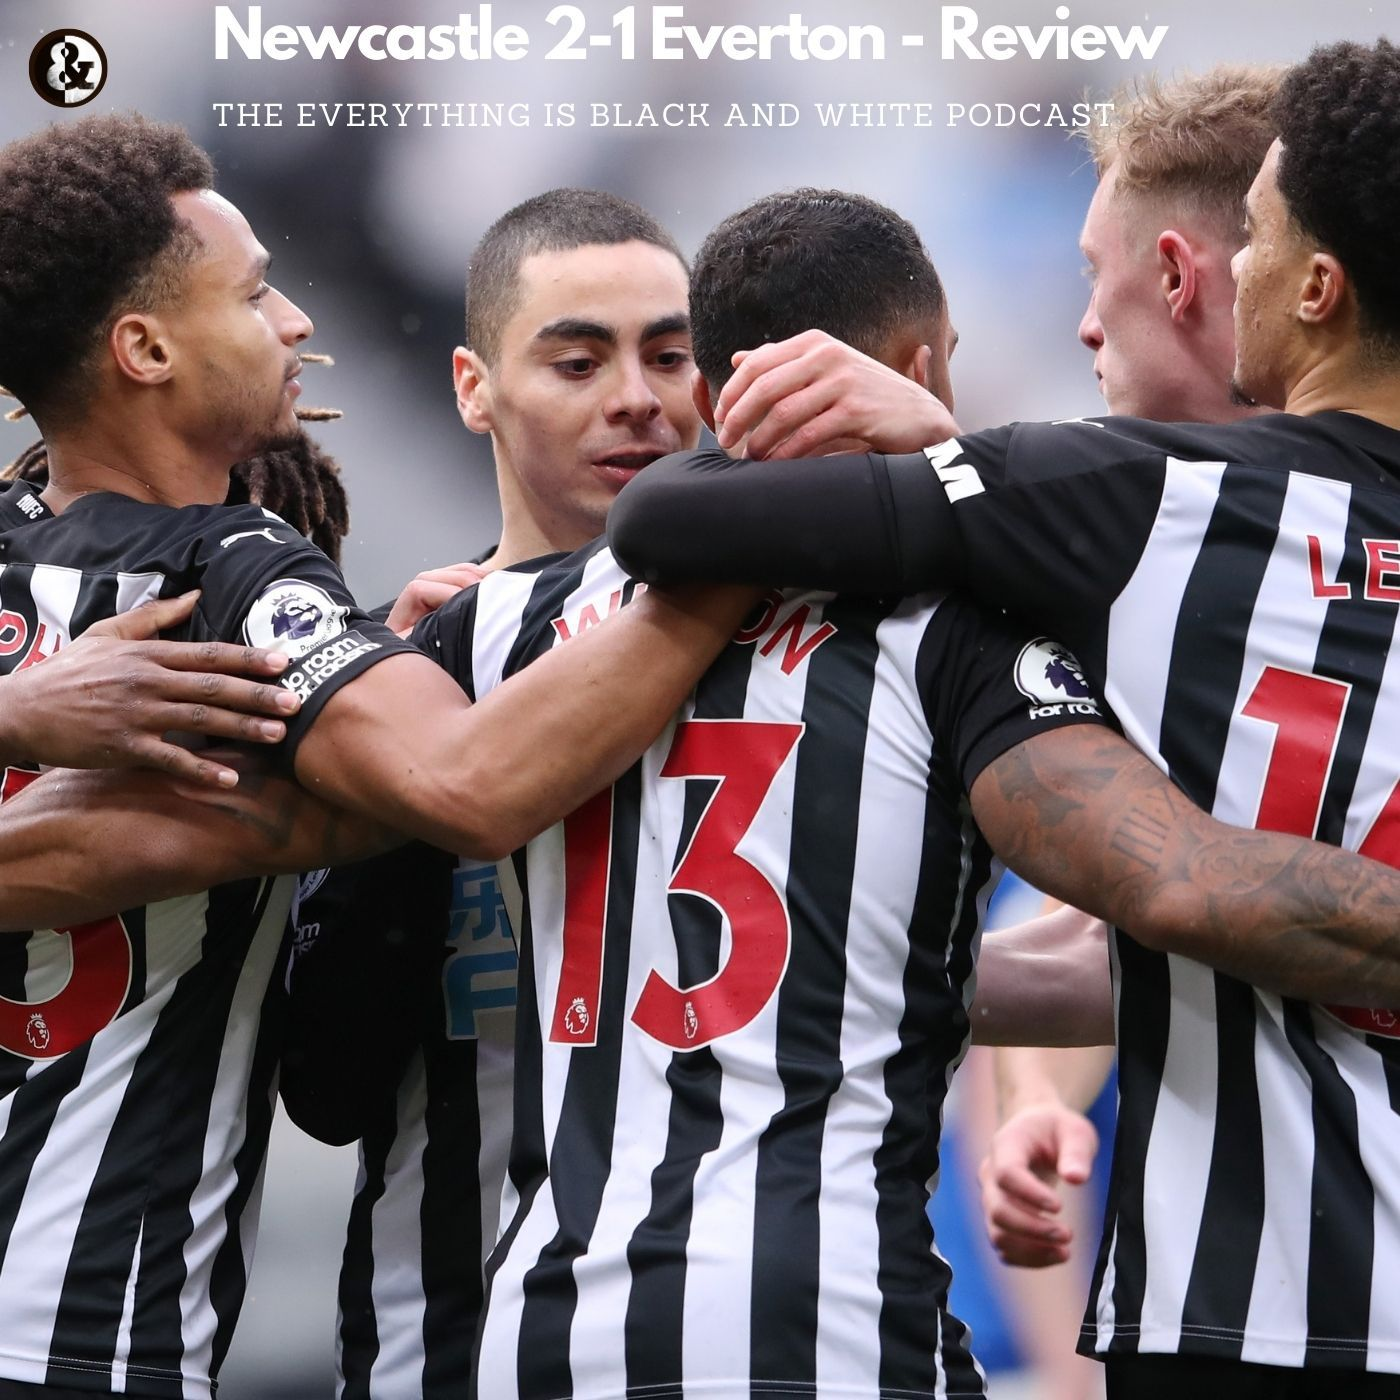 Callum Wilson grabs the goals but several stand out in NUFC's 2-1 victory over Everton